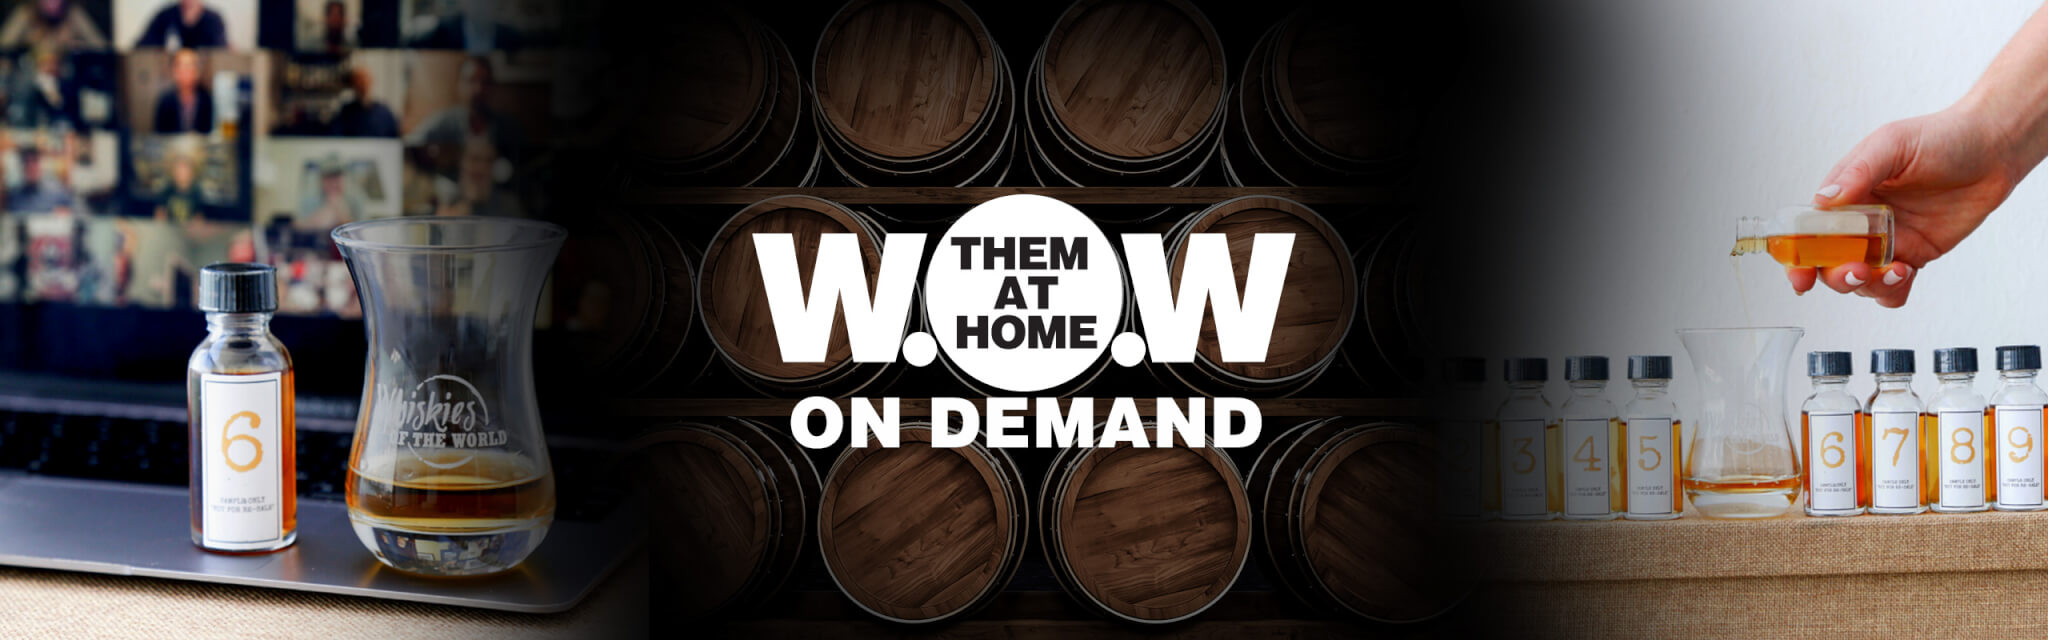 WOW THEM AT HOME - THE WHISKY & GIN EXPERIENCE